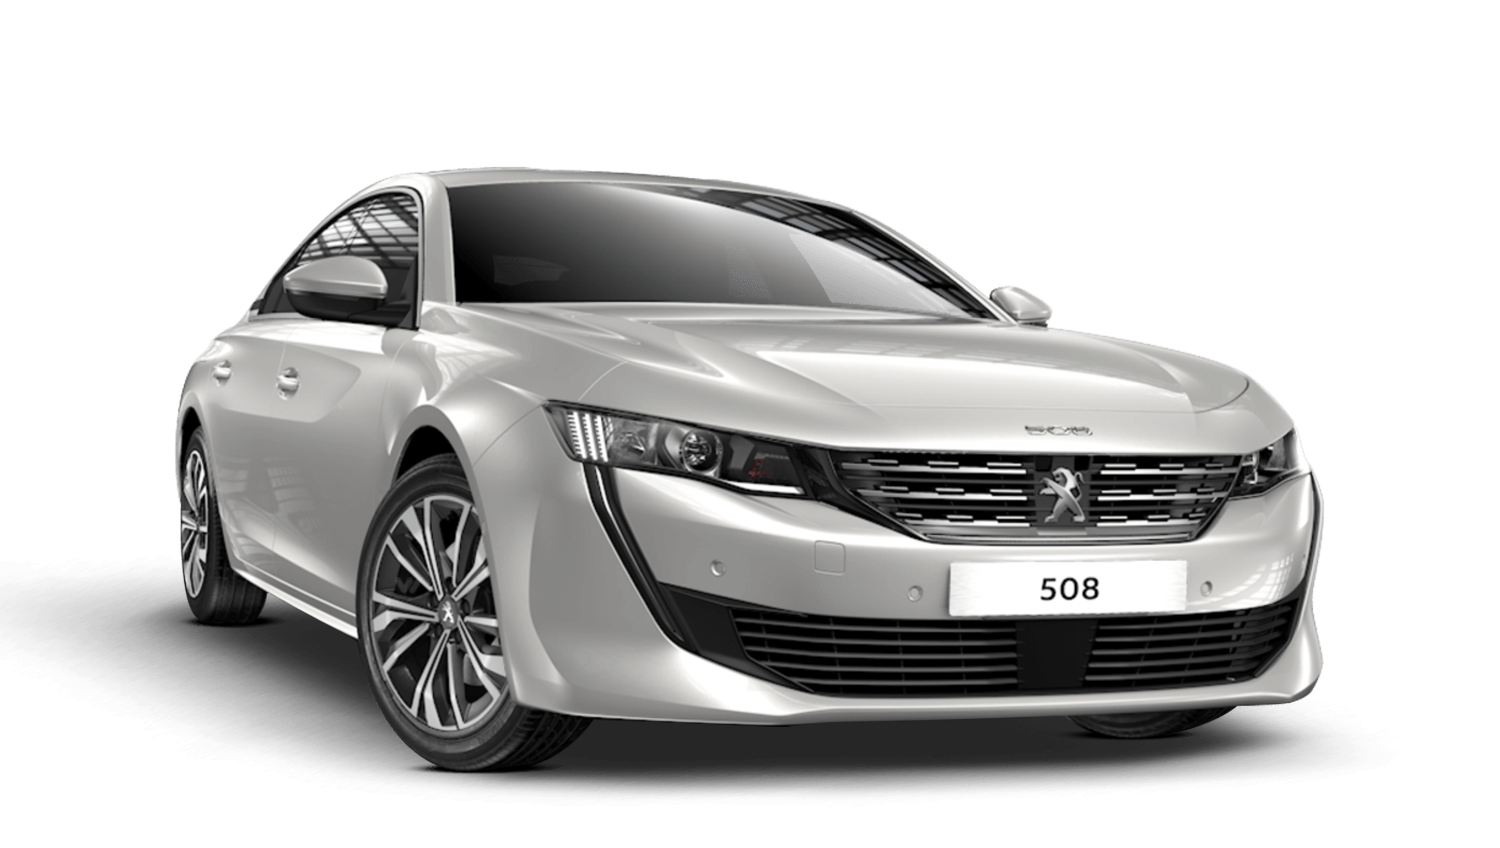 Pearlescent White Peugeot 508 Fastback